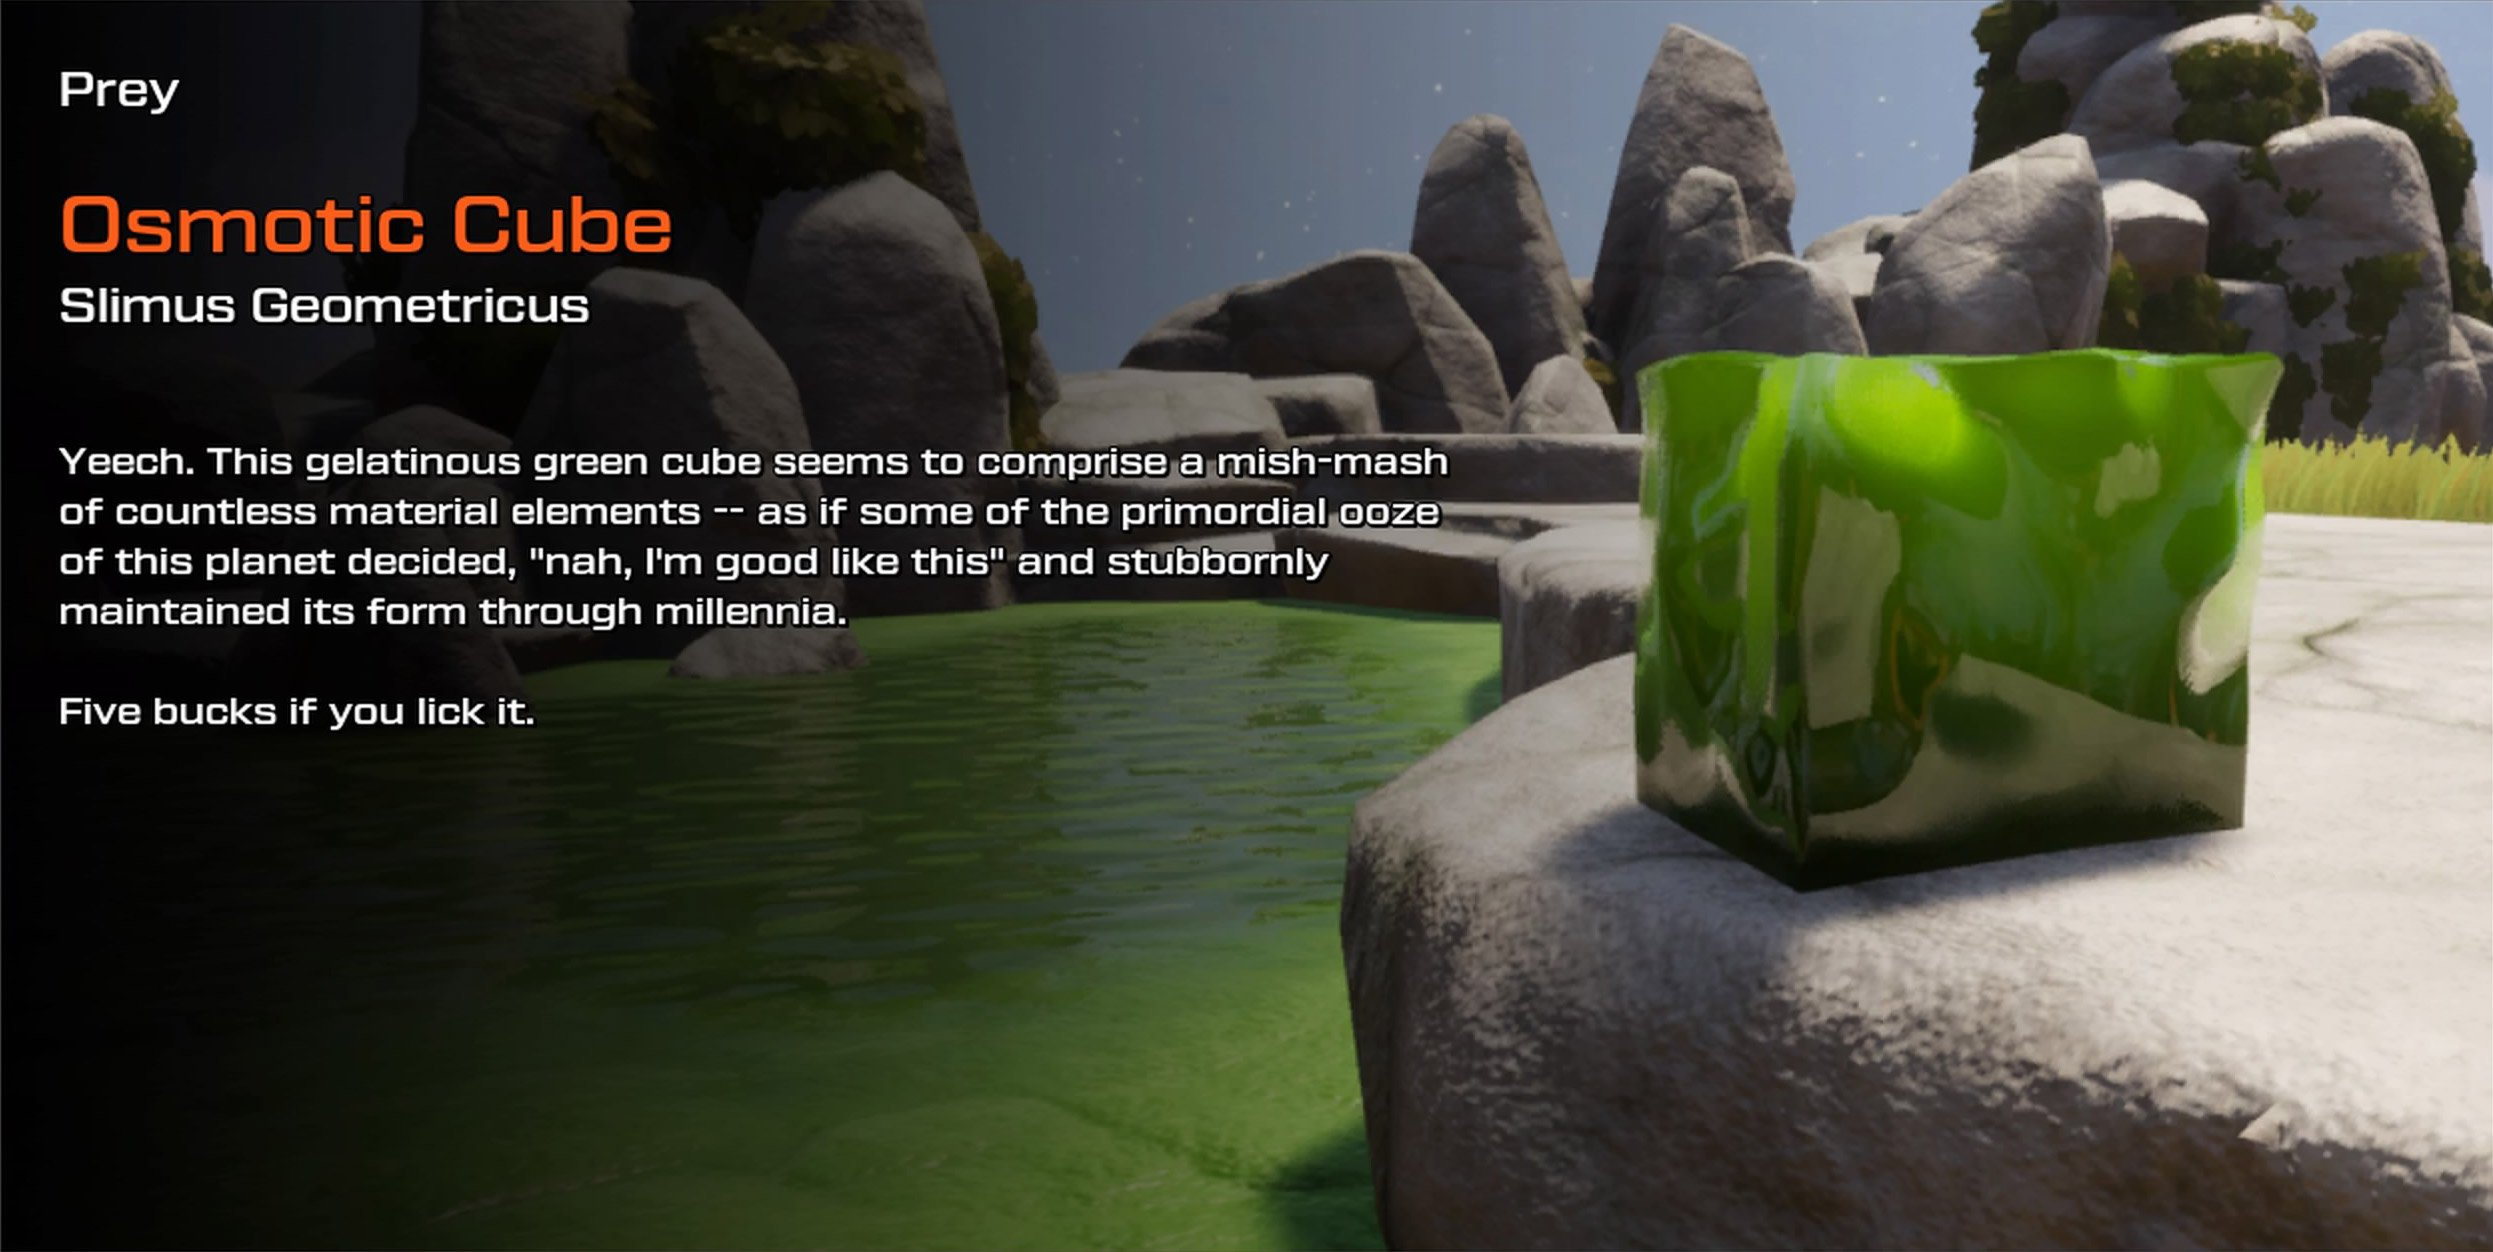 Osmotic Cube